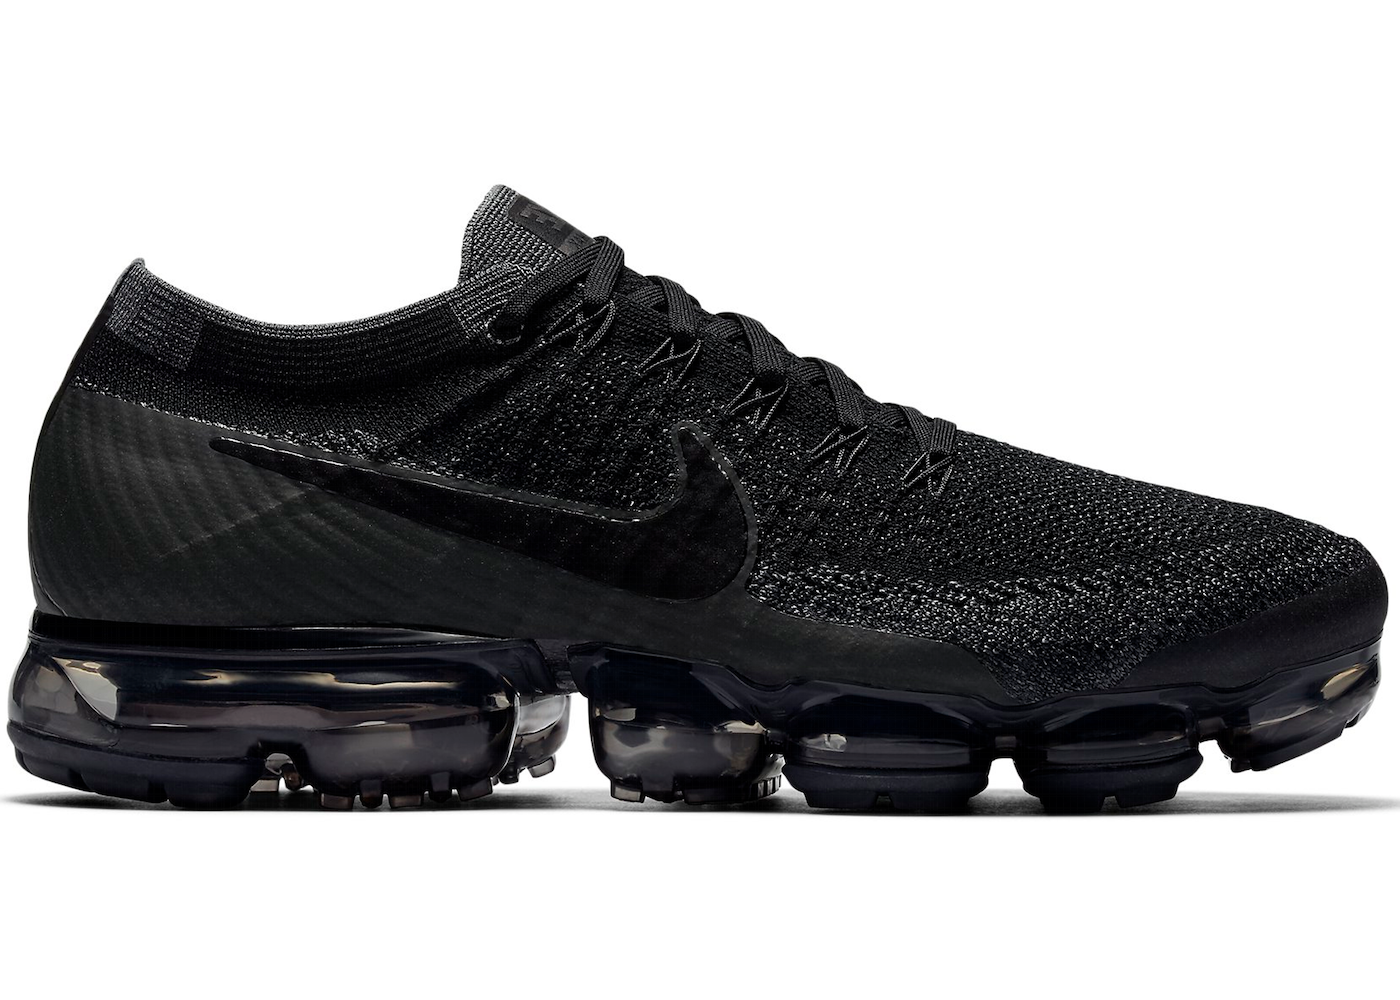 Where To Buy COMME des Garcons Nike VaporMax